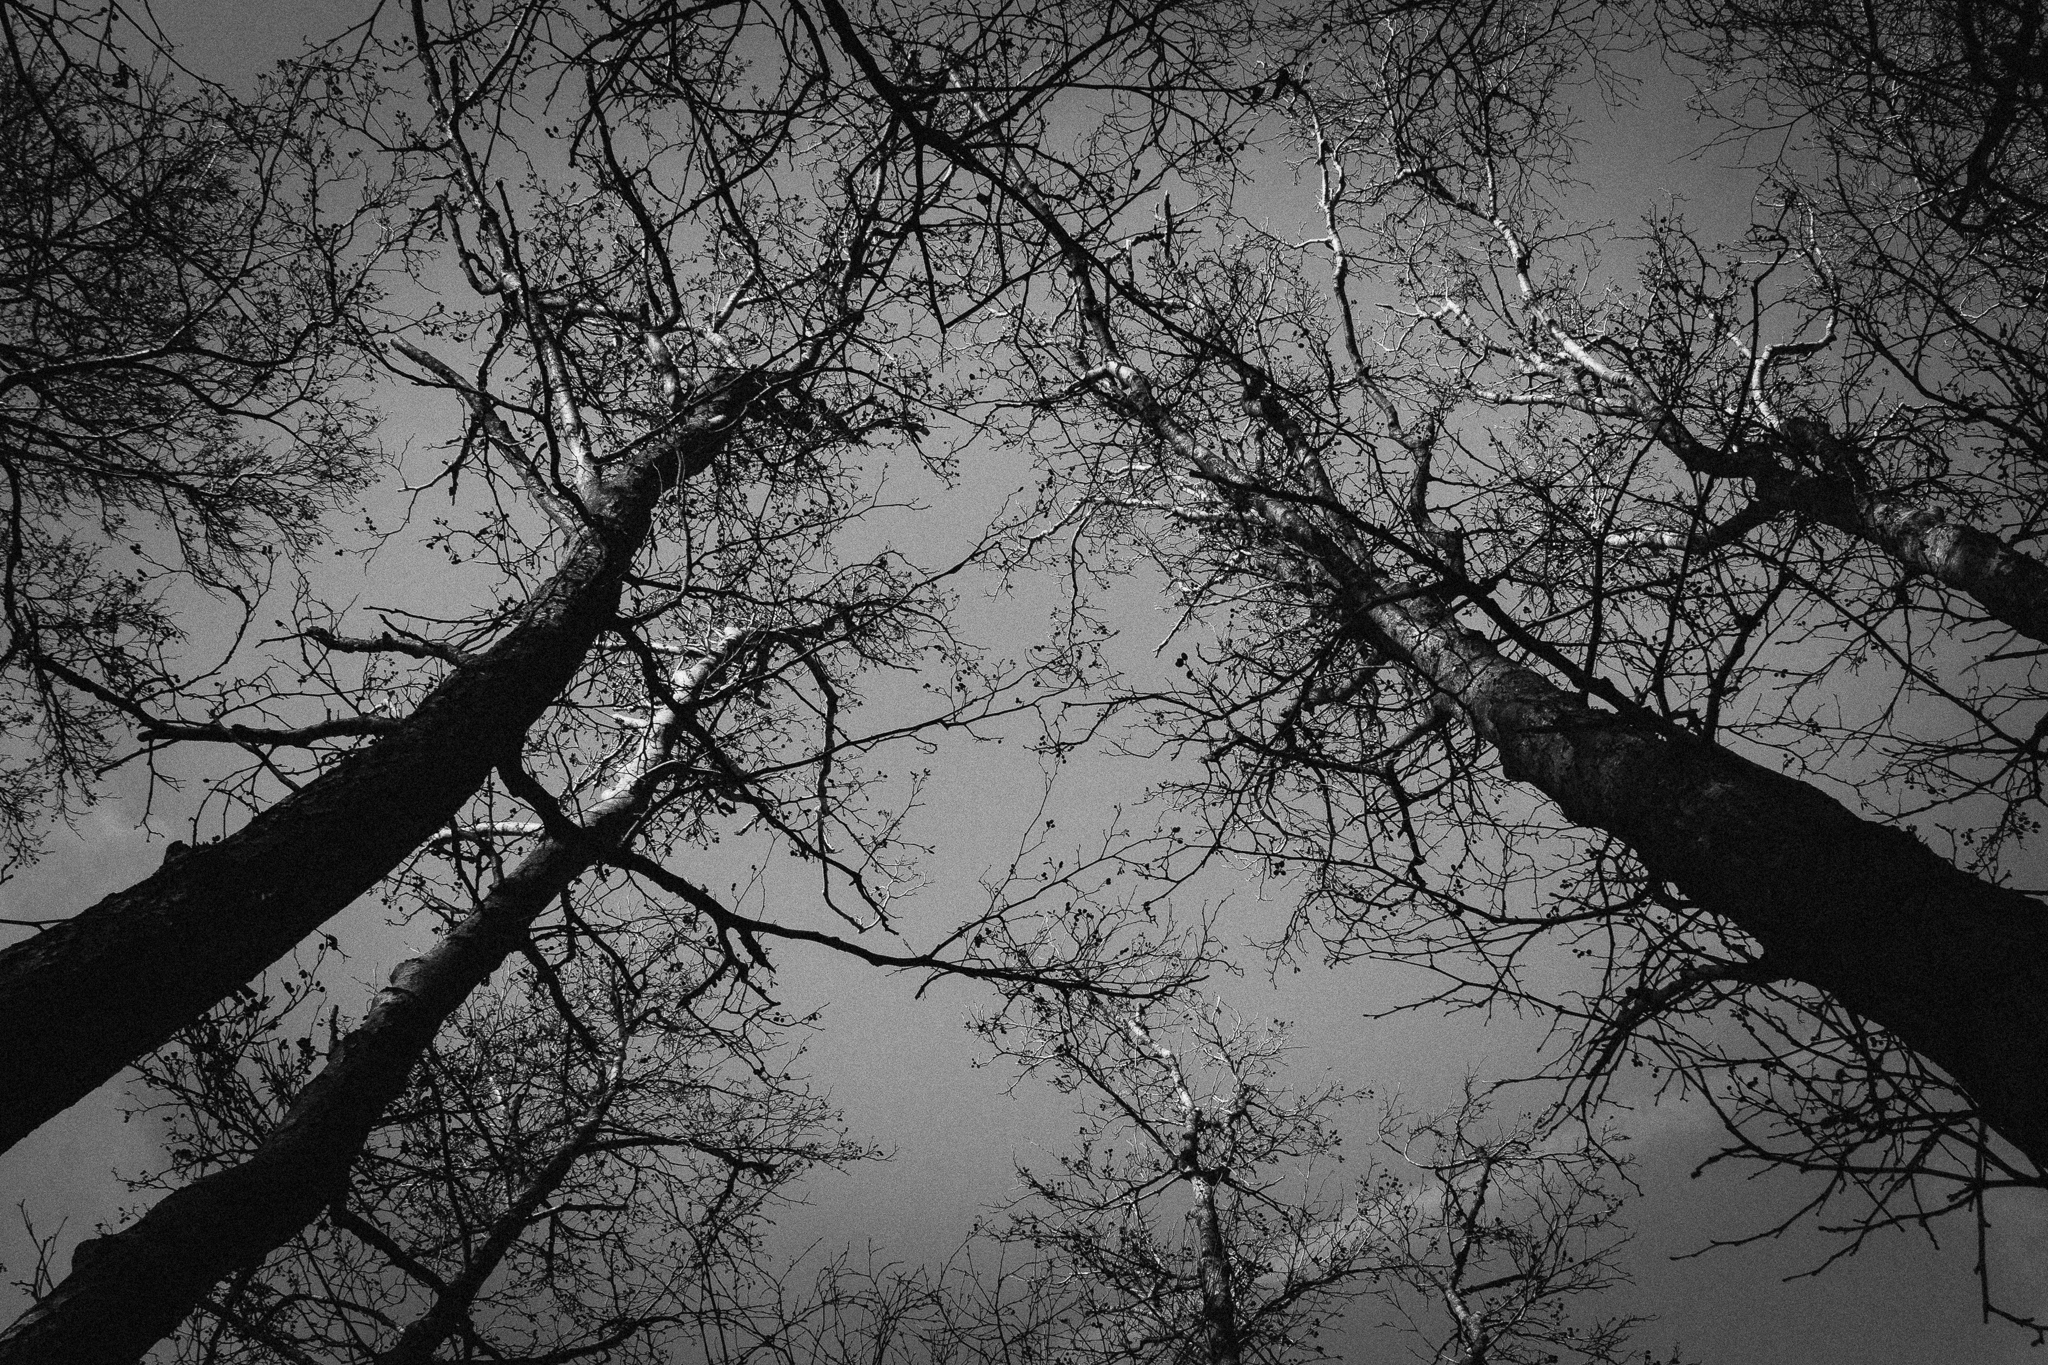 blood-vessel-trees-sky-bw (1 of 1).jpg